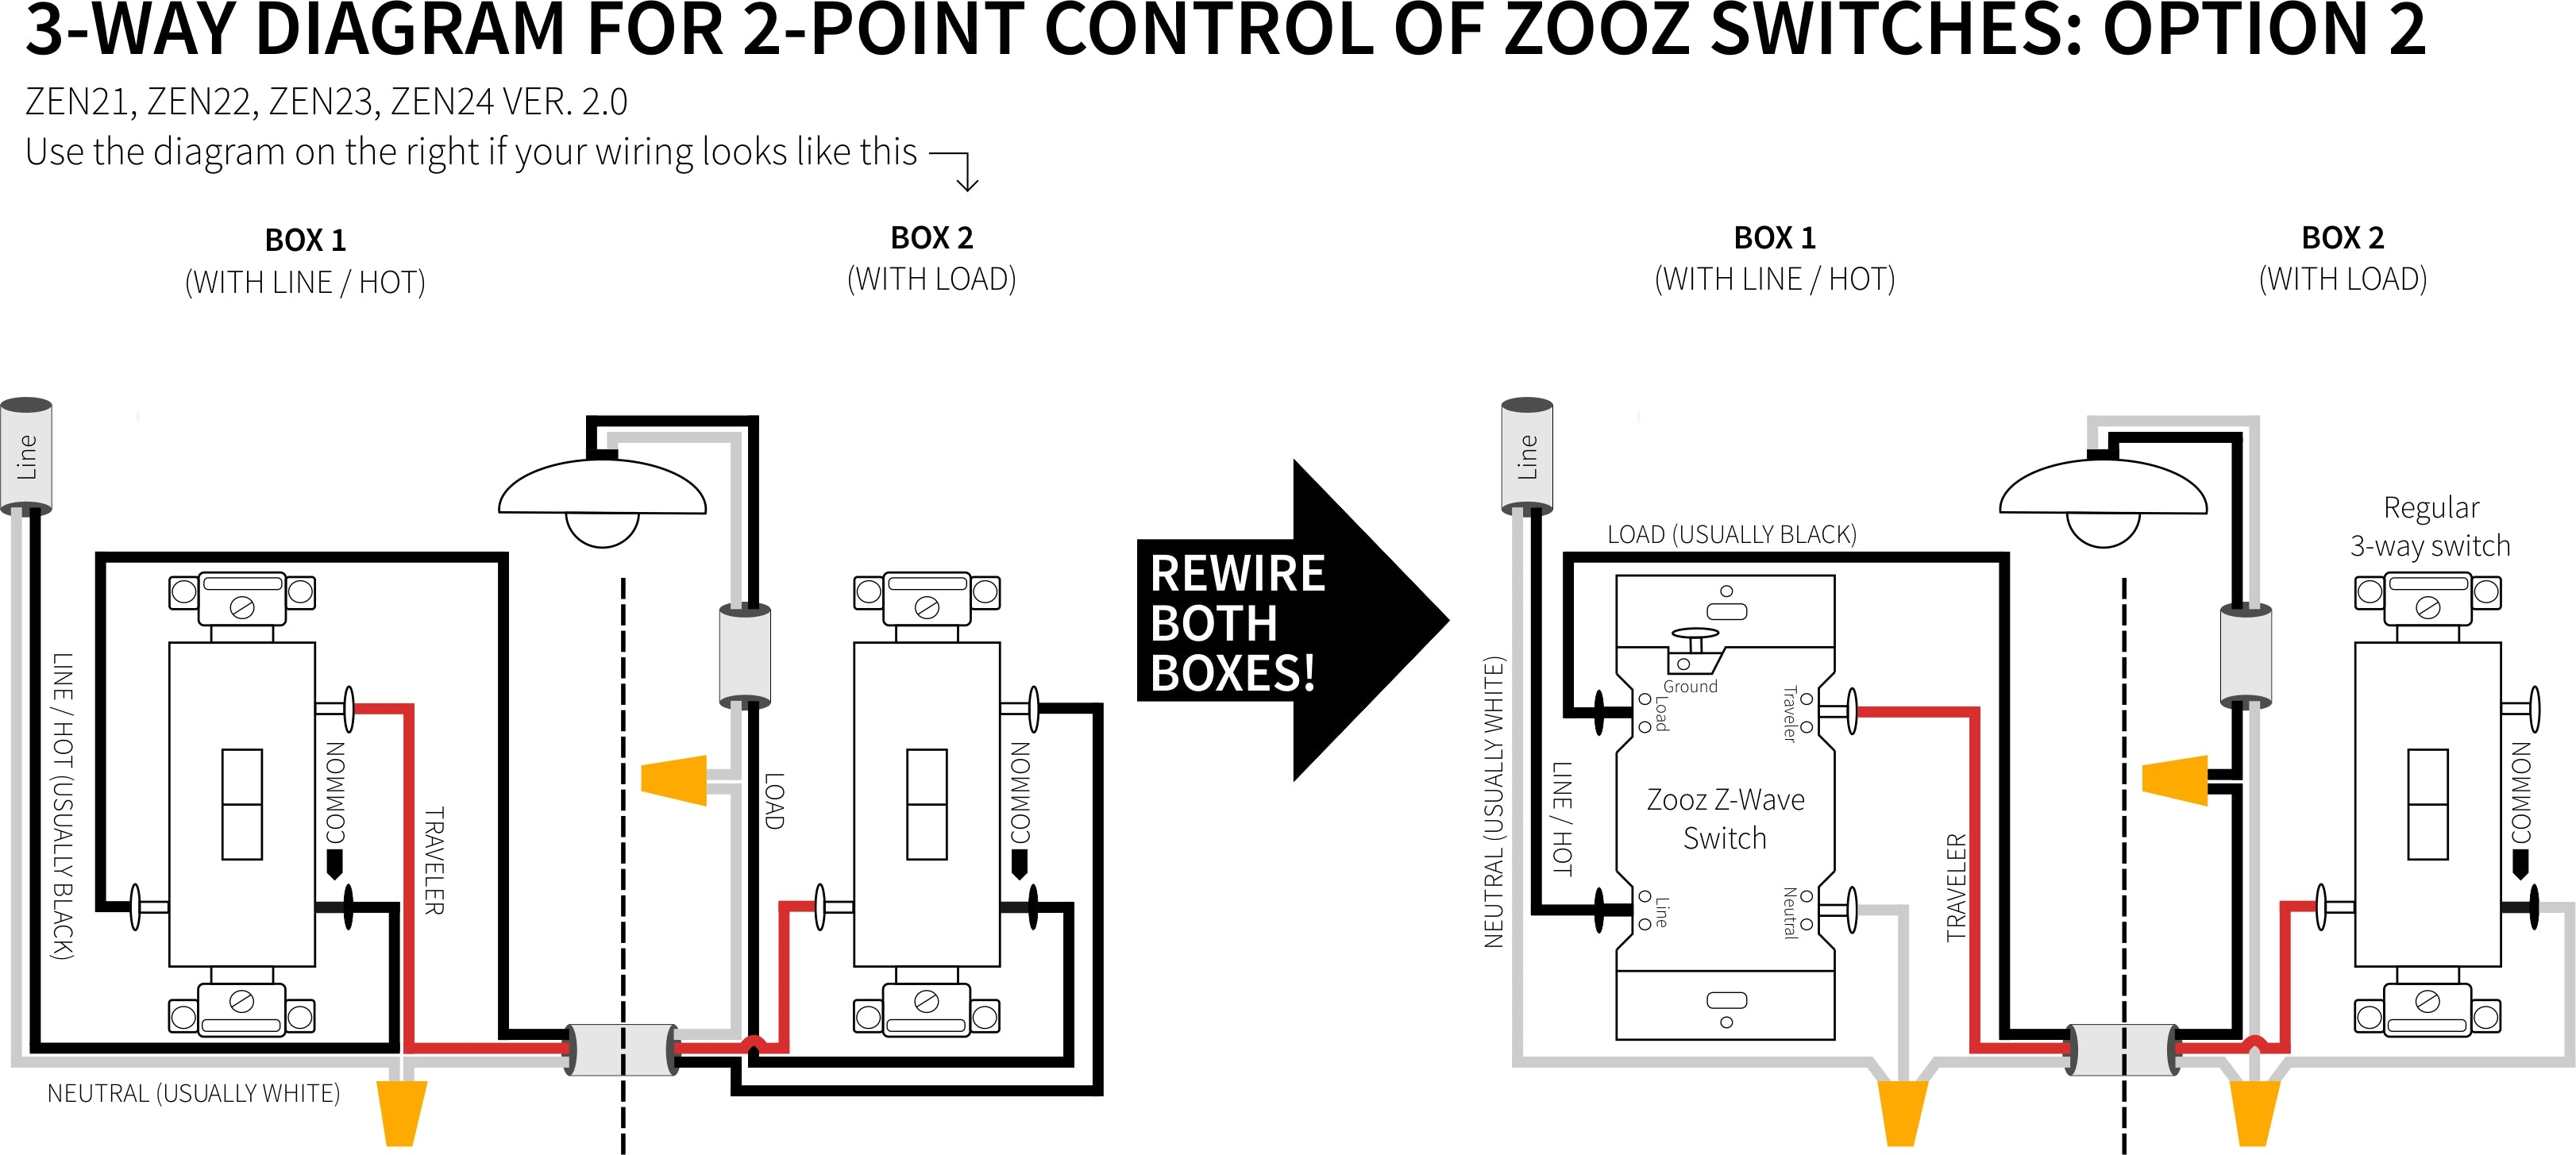 Wiring Diagram Gallery: 3 Way Touch Lamp Switch Wiring Diagram